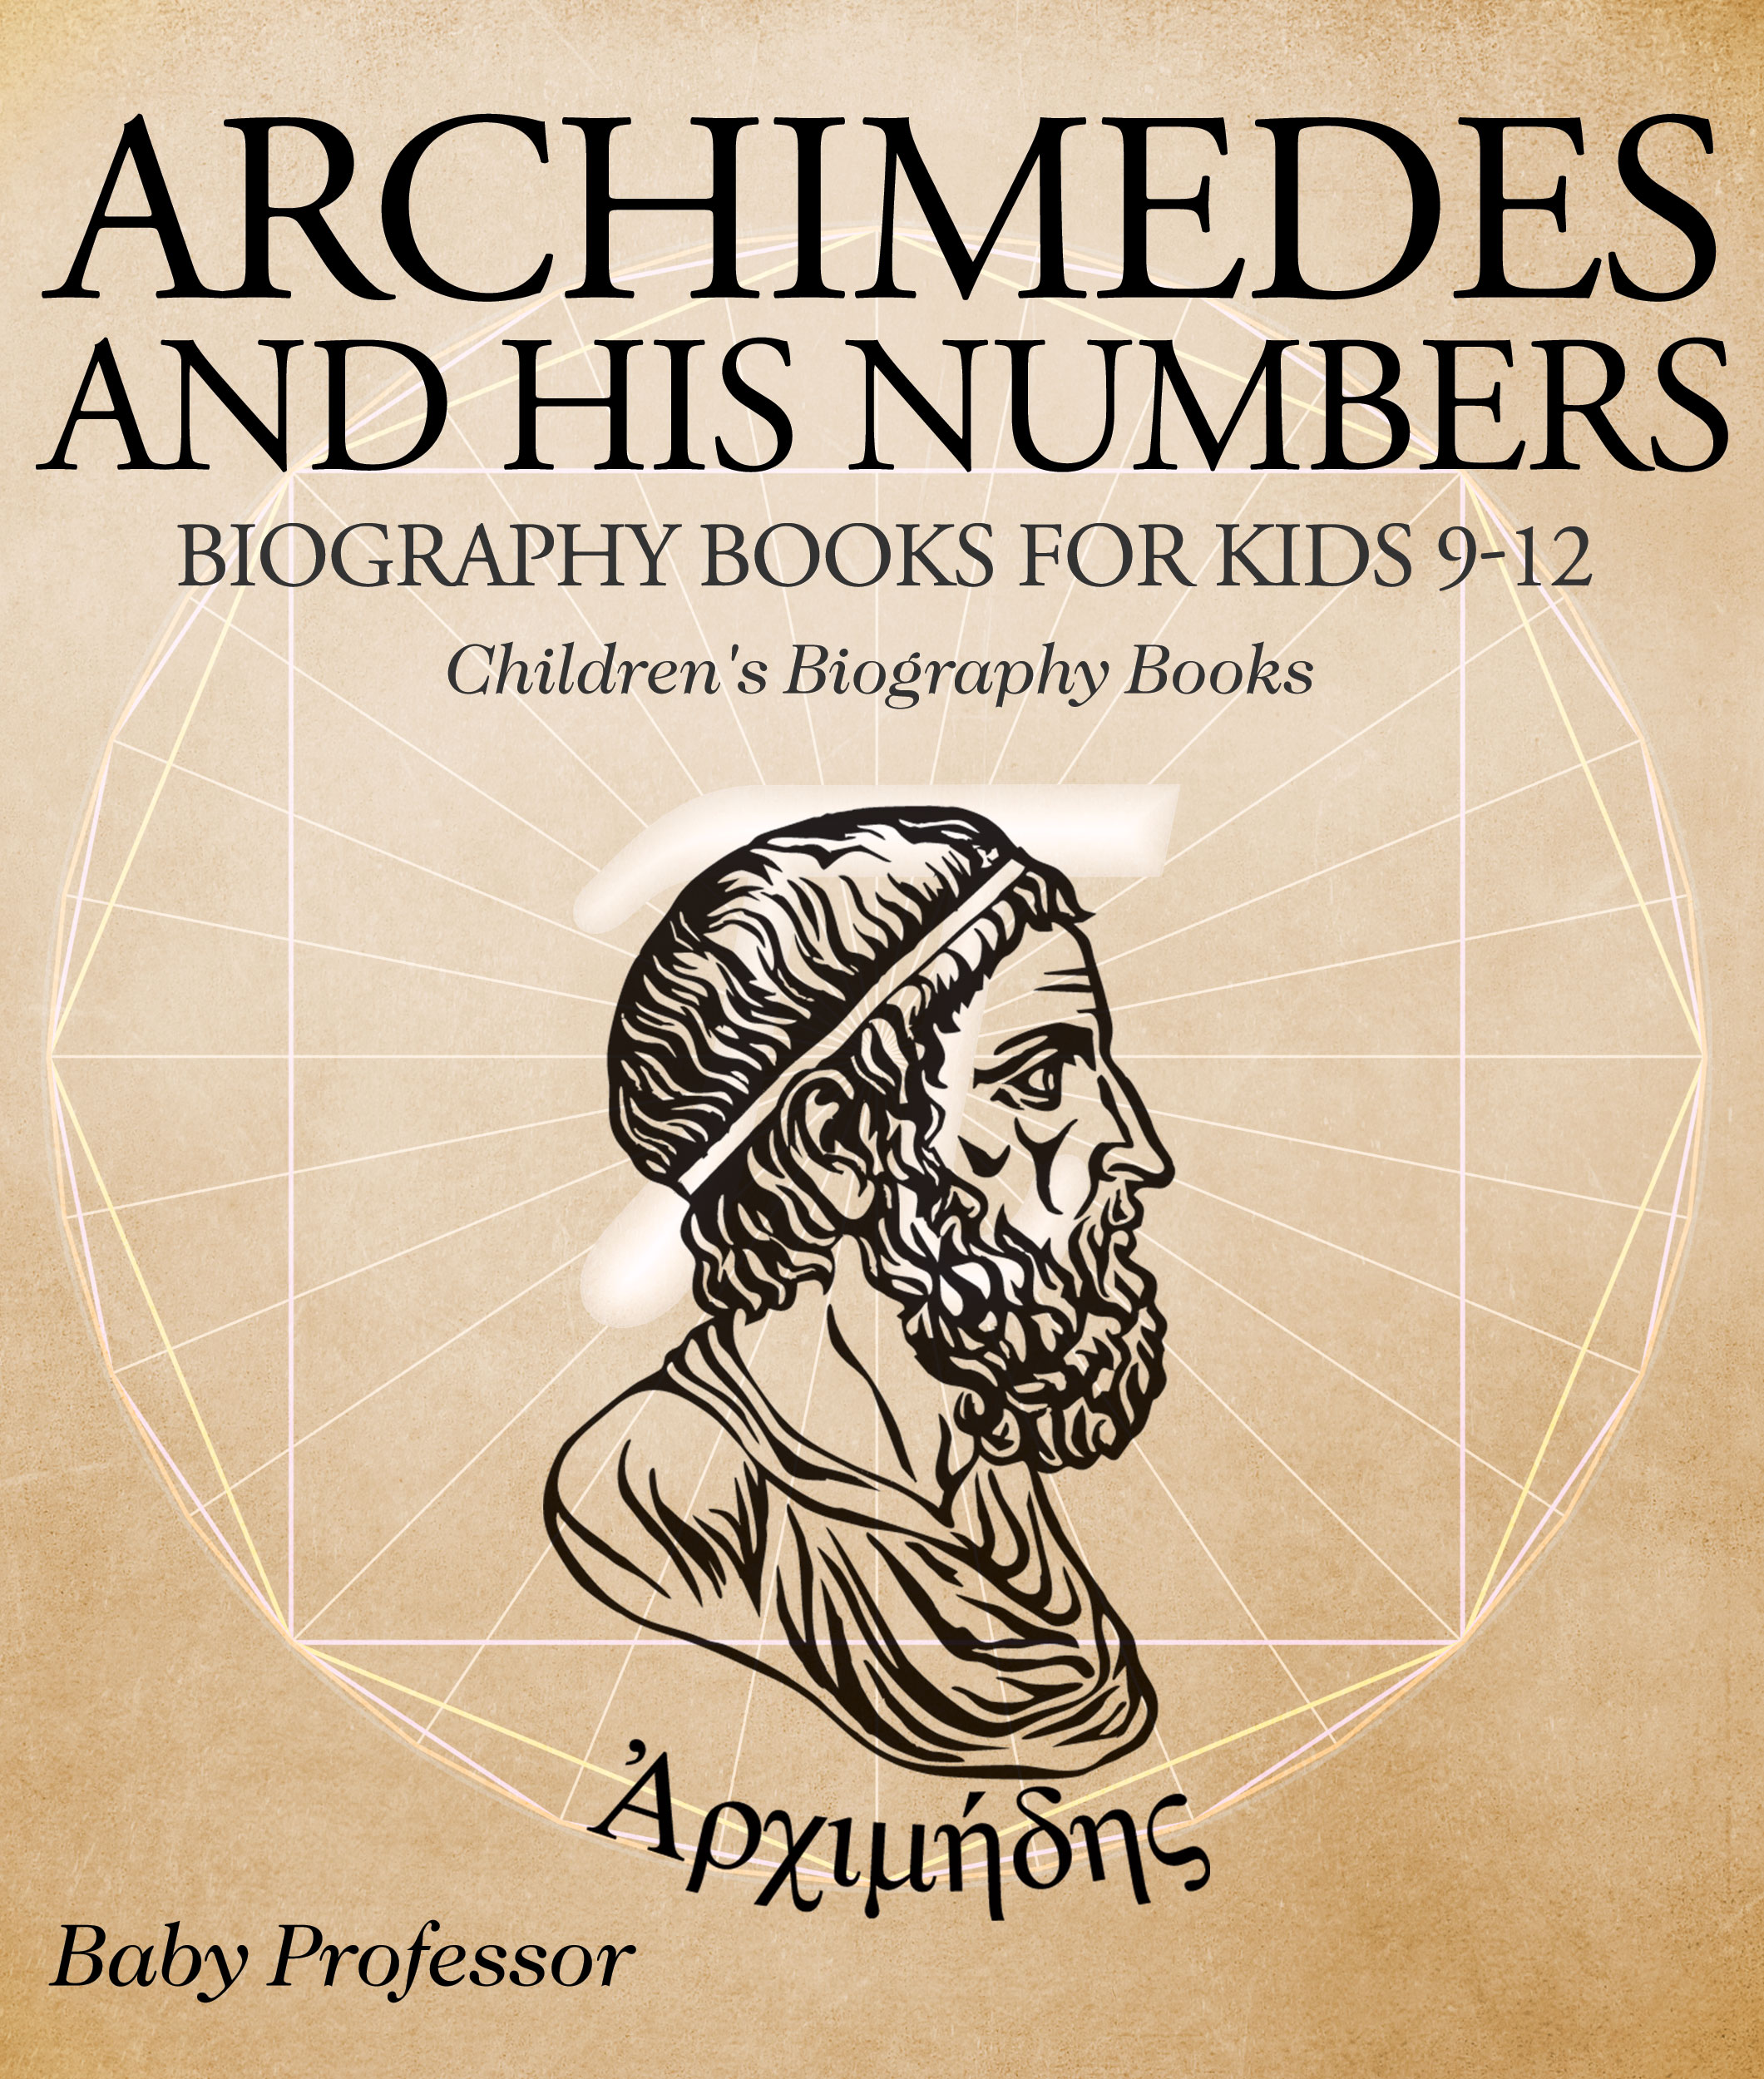 Archimedes and His Numbers - Biography Books for Kids 9-12 | Children's Biography Books